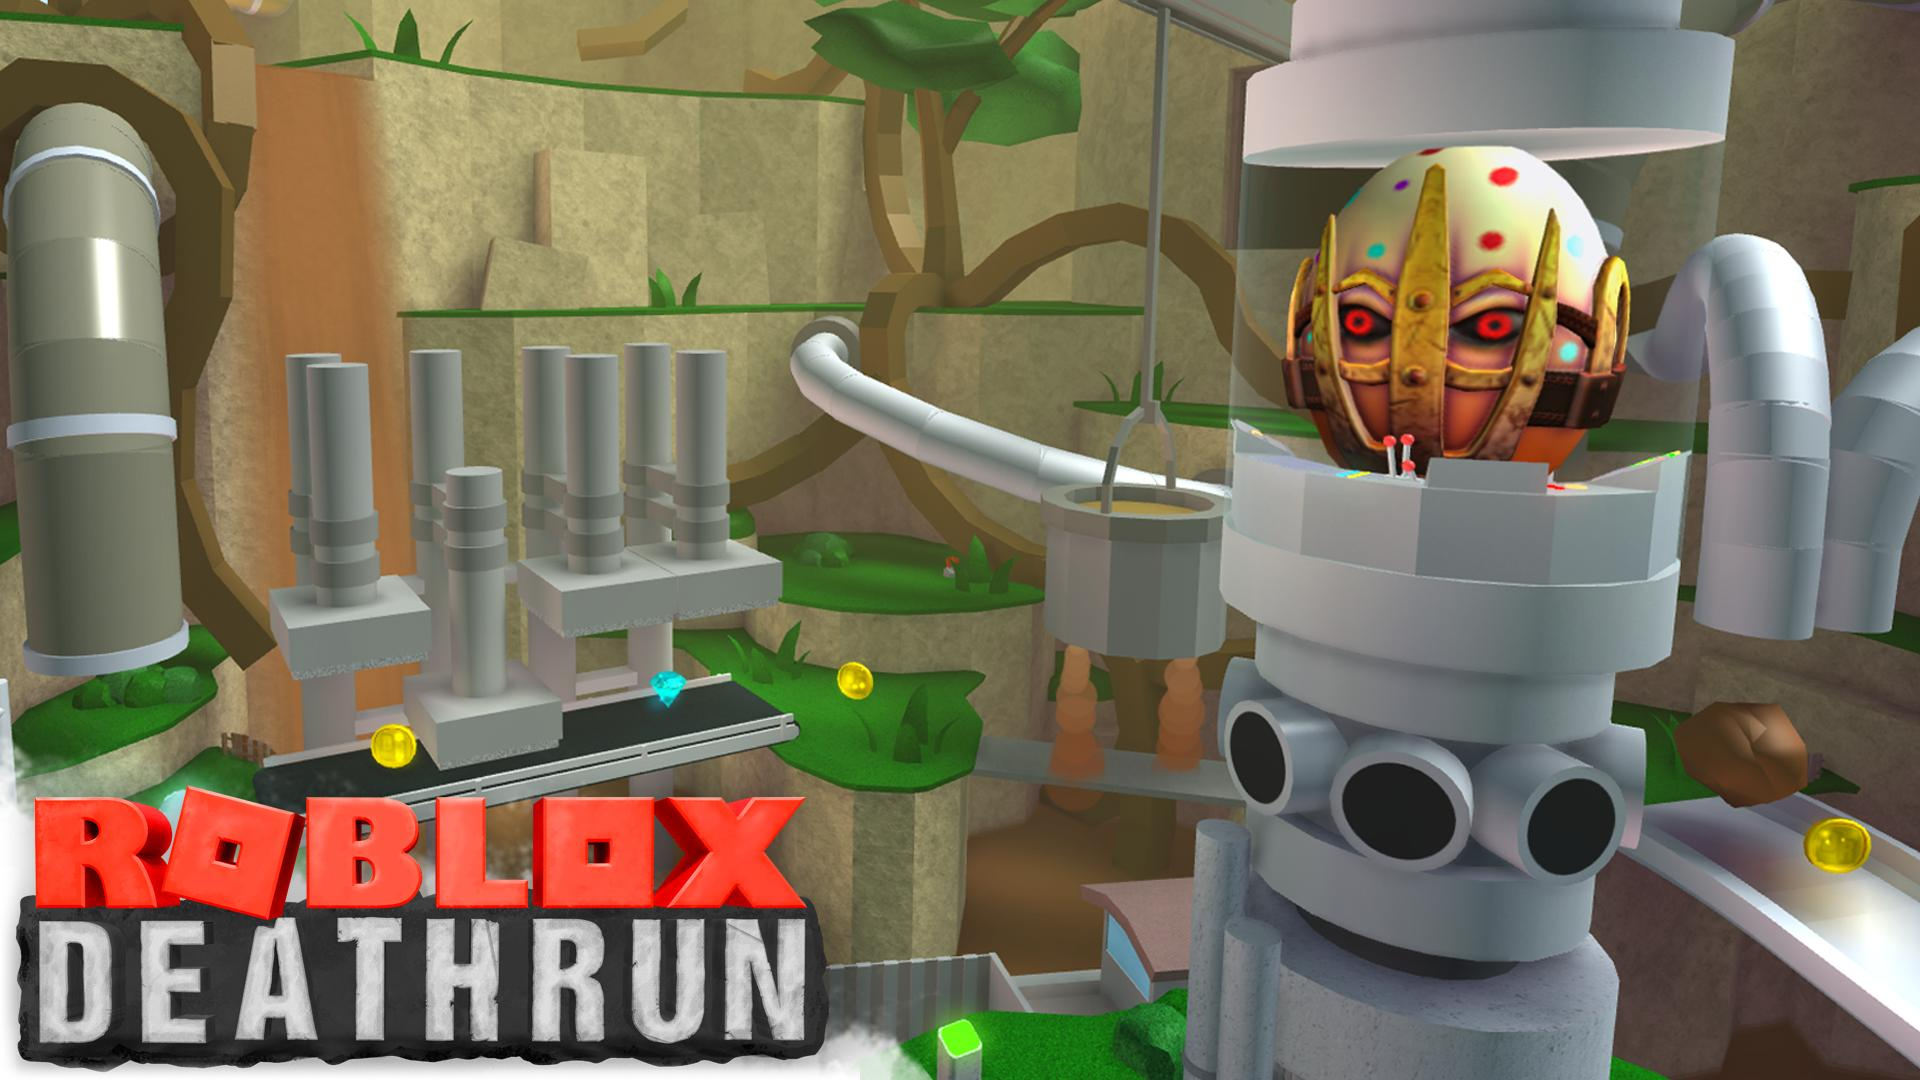 Teamwork Badge Roblox Wsly On Twitter Deathrun S Festive Fallen Factory Mission For The Roblox Egg Hunt 2019 Is Live Enjoy A Unique New Map Where Teamwork Is Required Over 80 New Achievements With Rewards